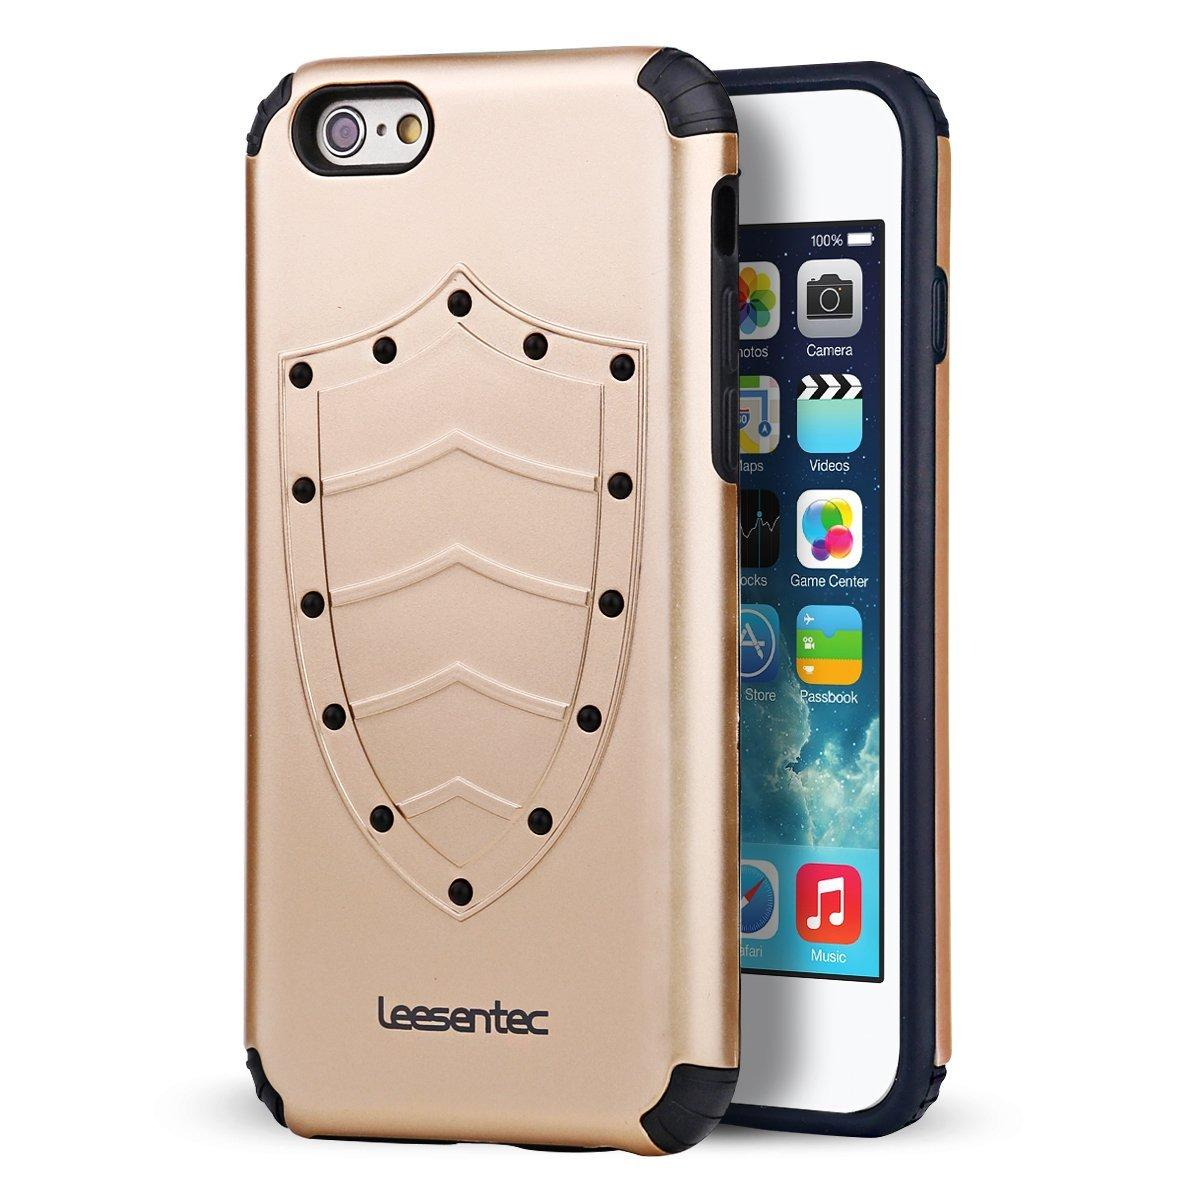 $0.99 Leesentec Protective Case for  iPhone 6 or 6 Plus